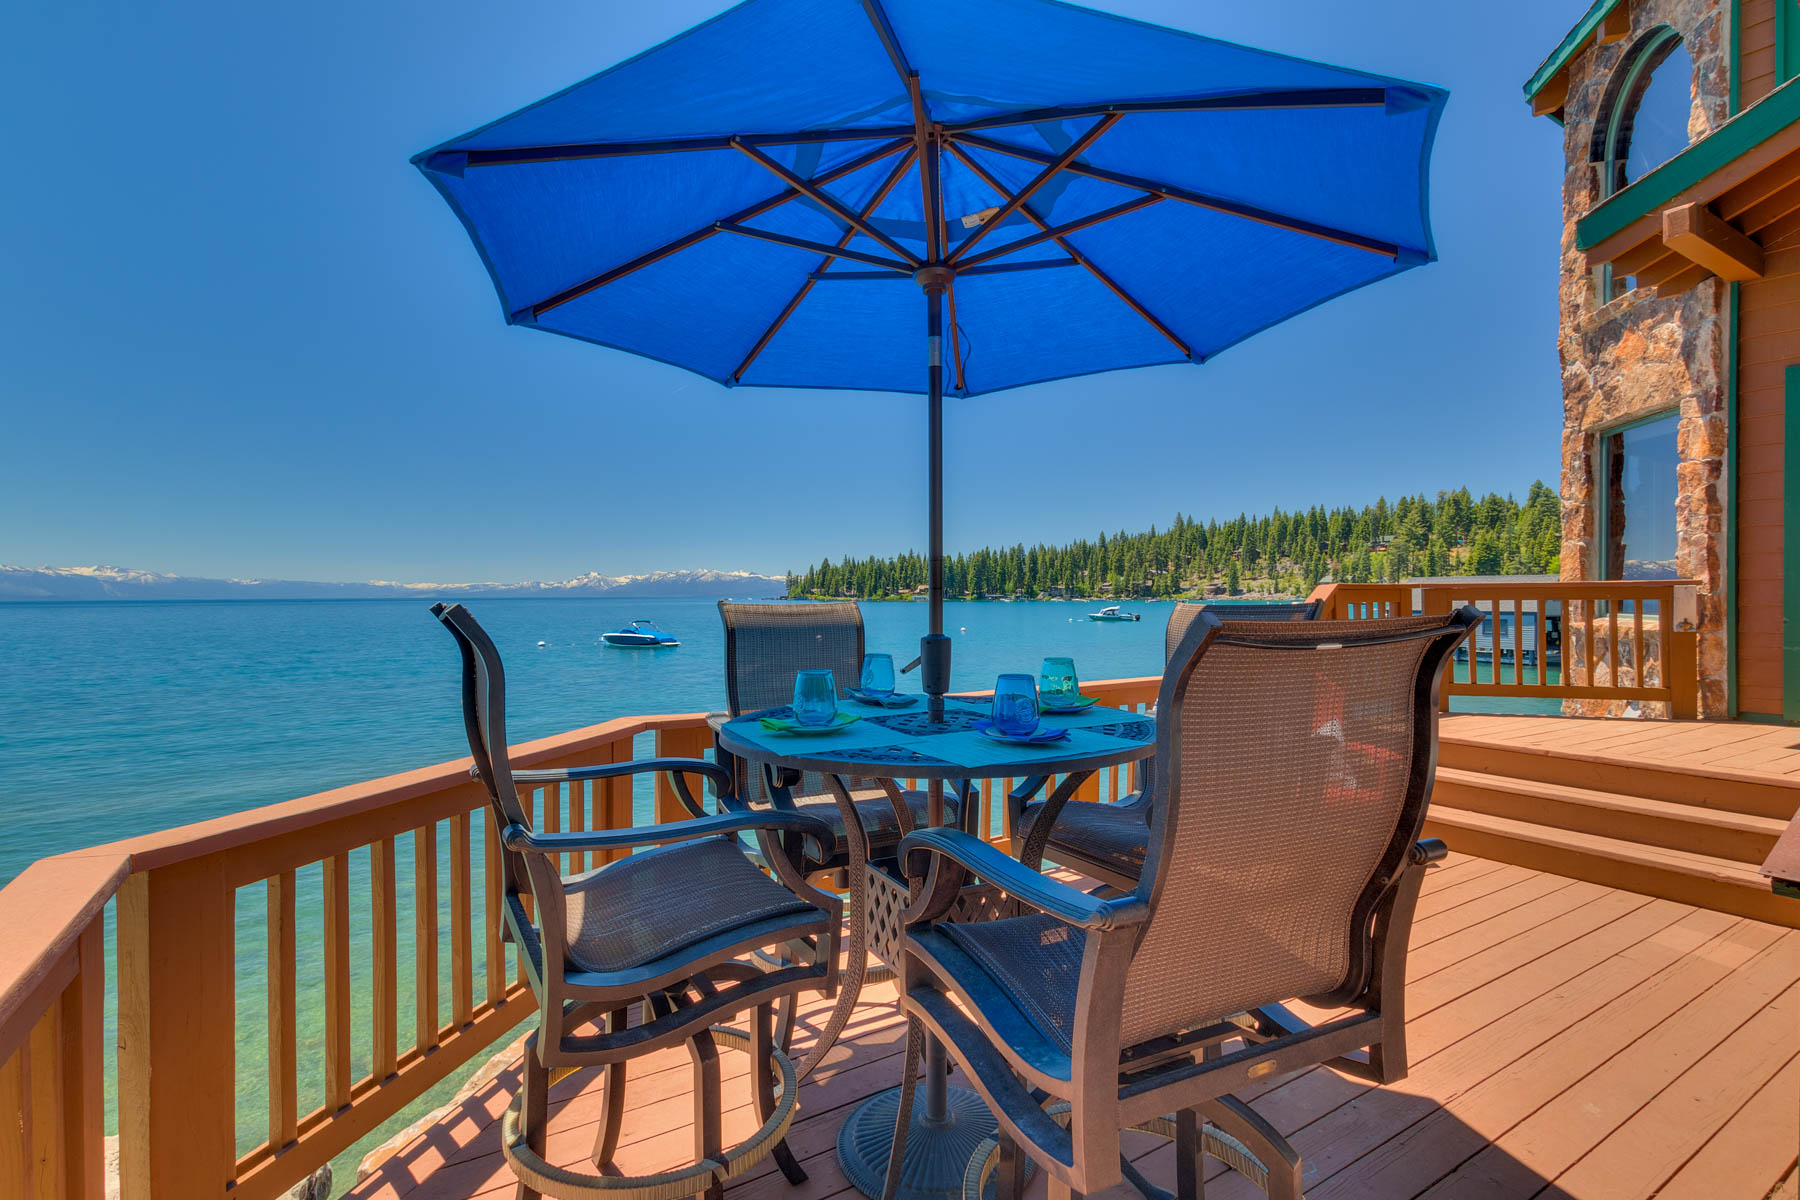 Additional photo for property listing at 6100 N Lake Blvd., Tahoe Vista, CA 6100 N Lake Blvd. Tahoe Vista, California 96148 United States